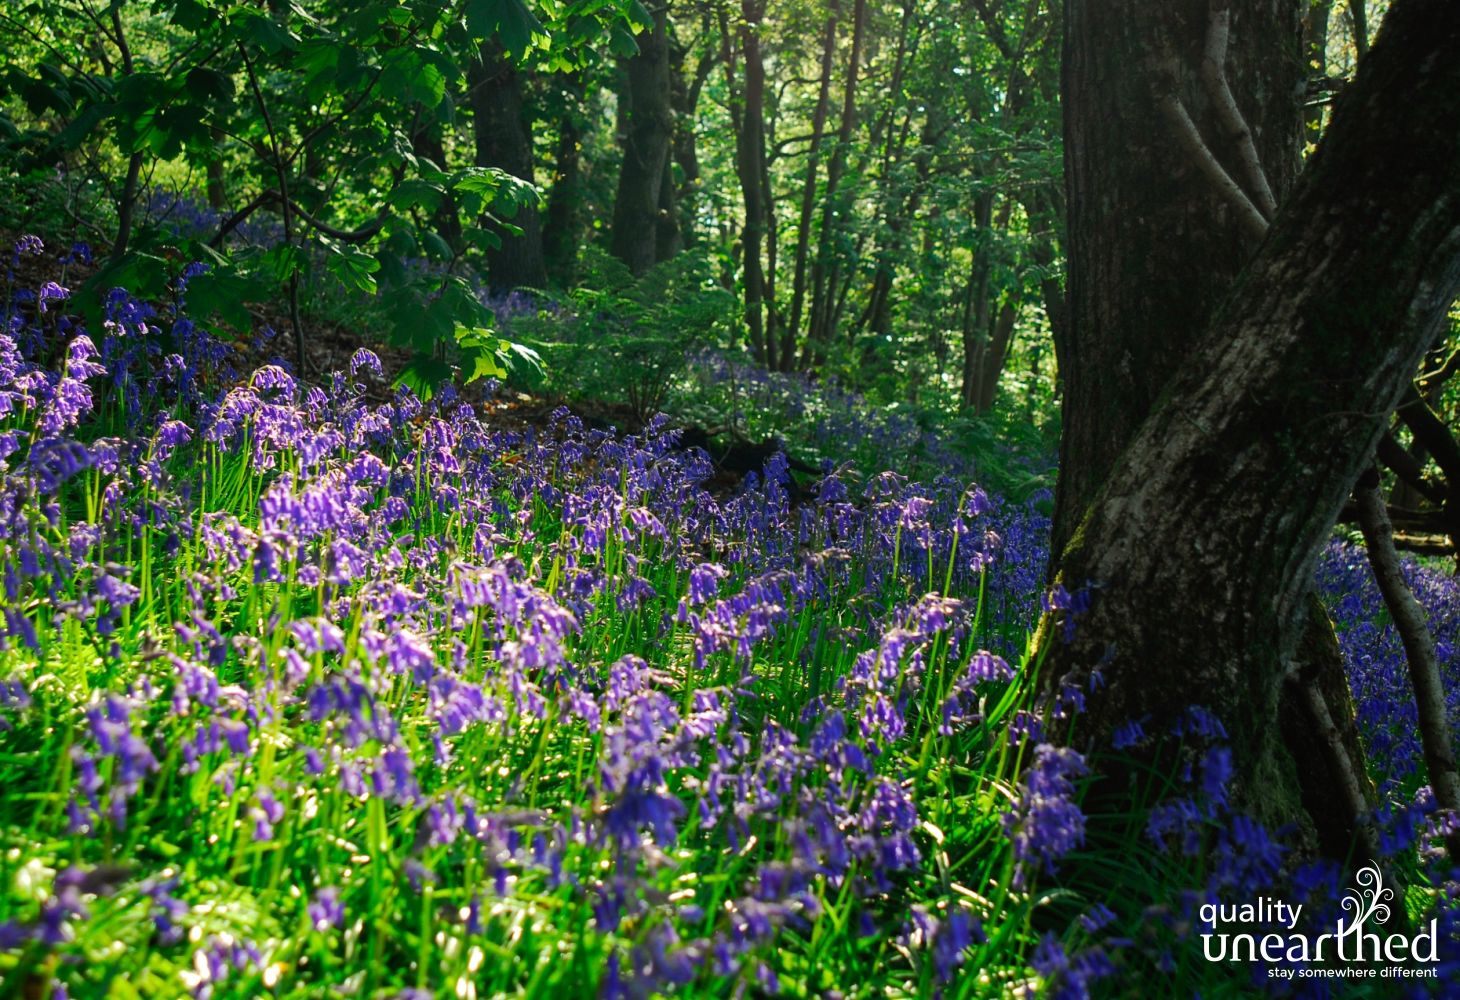 Bluebells beckon visitors to explore the Mid Wales woodlands, all easy to get to from the family cabin